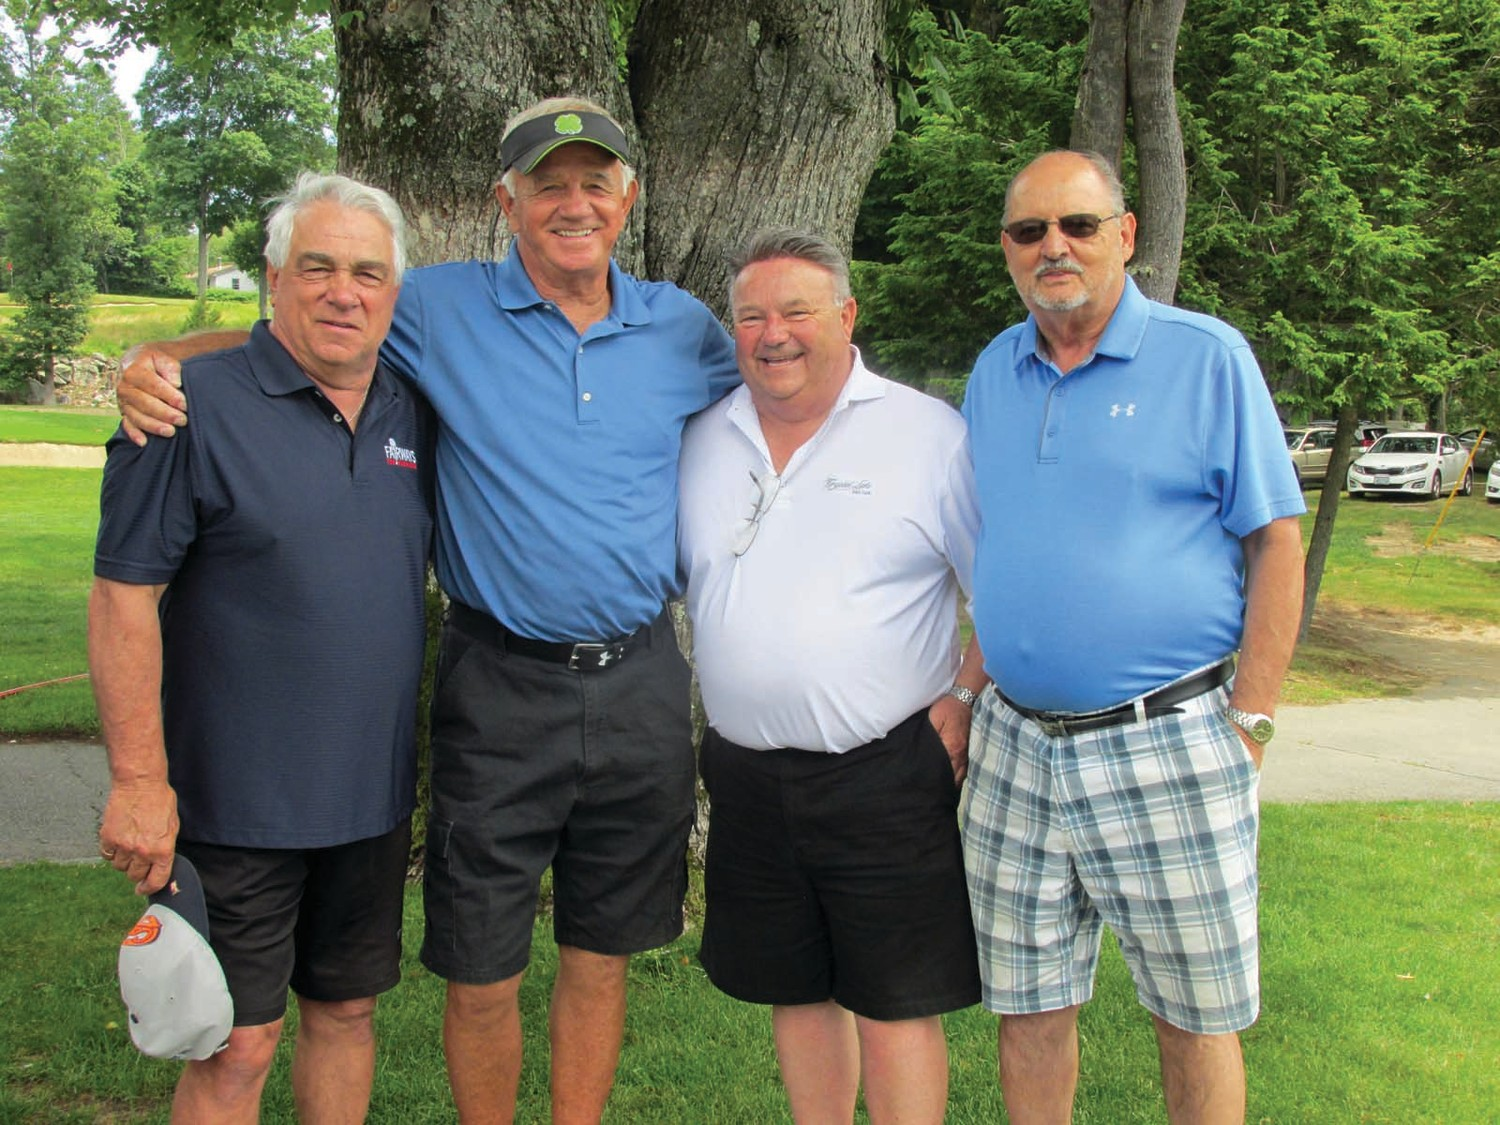 FIRST FORCE: The 1963 JHS baseball team captured the Panthers' first ever state champion ship in any sport. Former Panthers Dave Pisaturo, Scott Moore, Ed Skovron and Mel Steppo have played in every Gary V. Mazzie Memorial Golf Tournament.